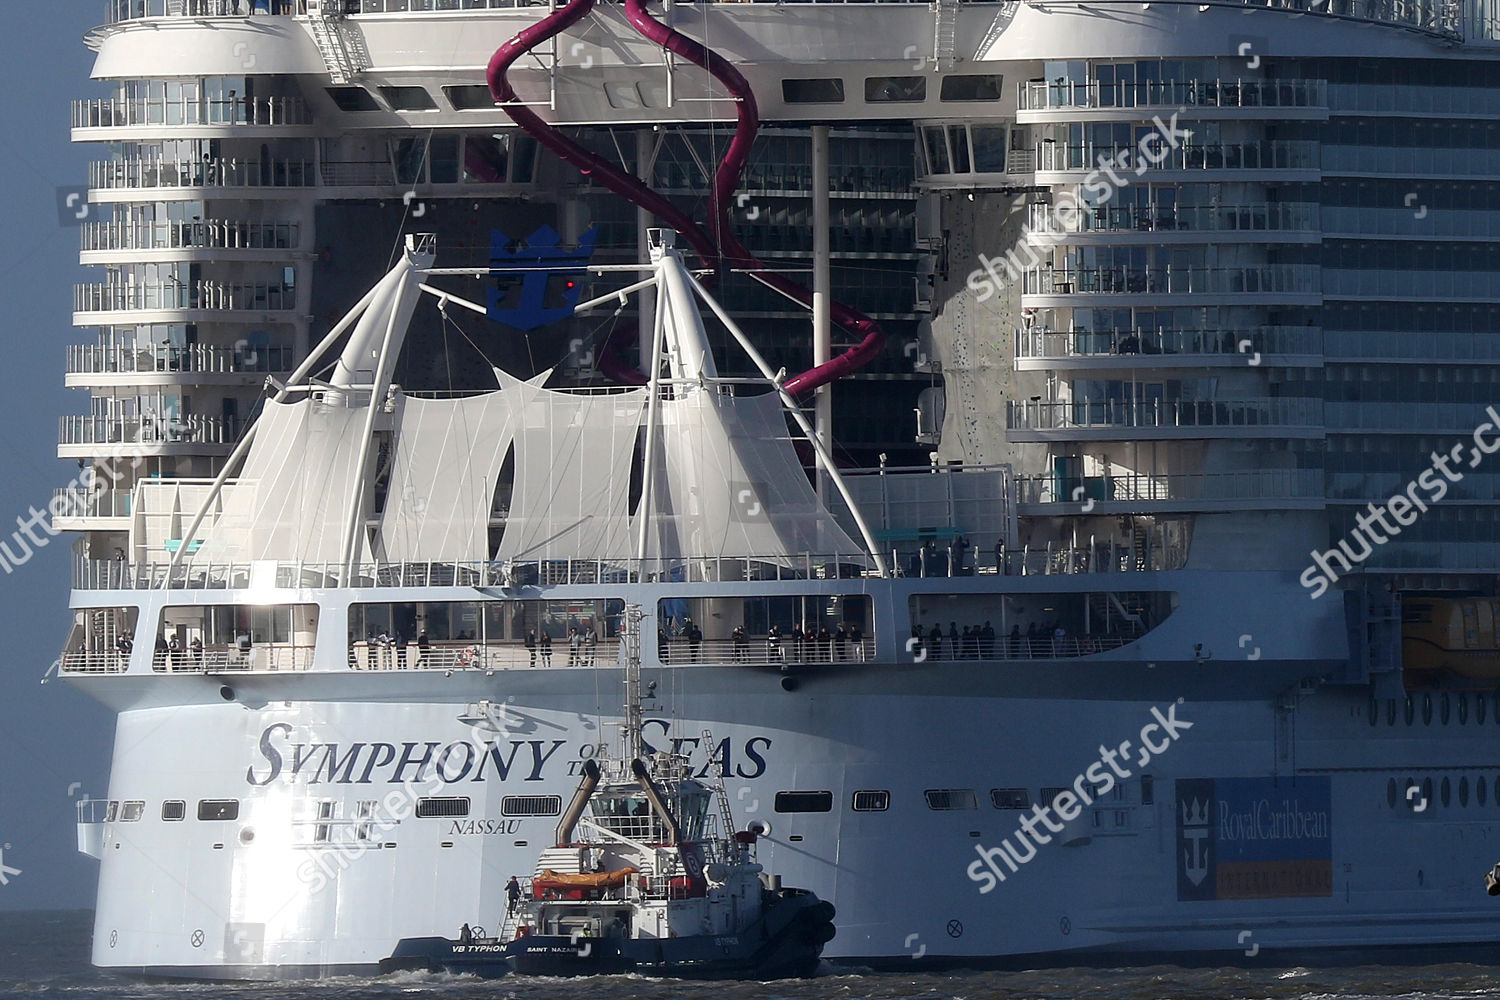 Cruise Ship Symphony Seas Leaves Port St Editorial Stock Photo